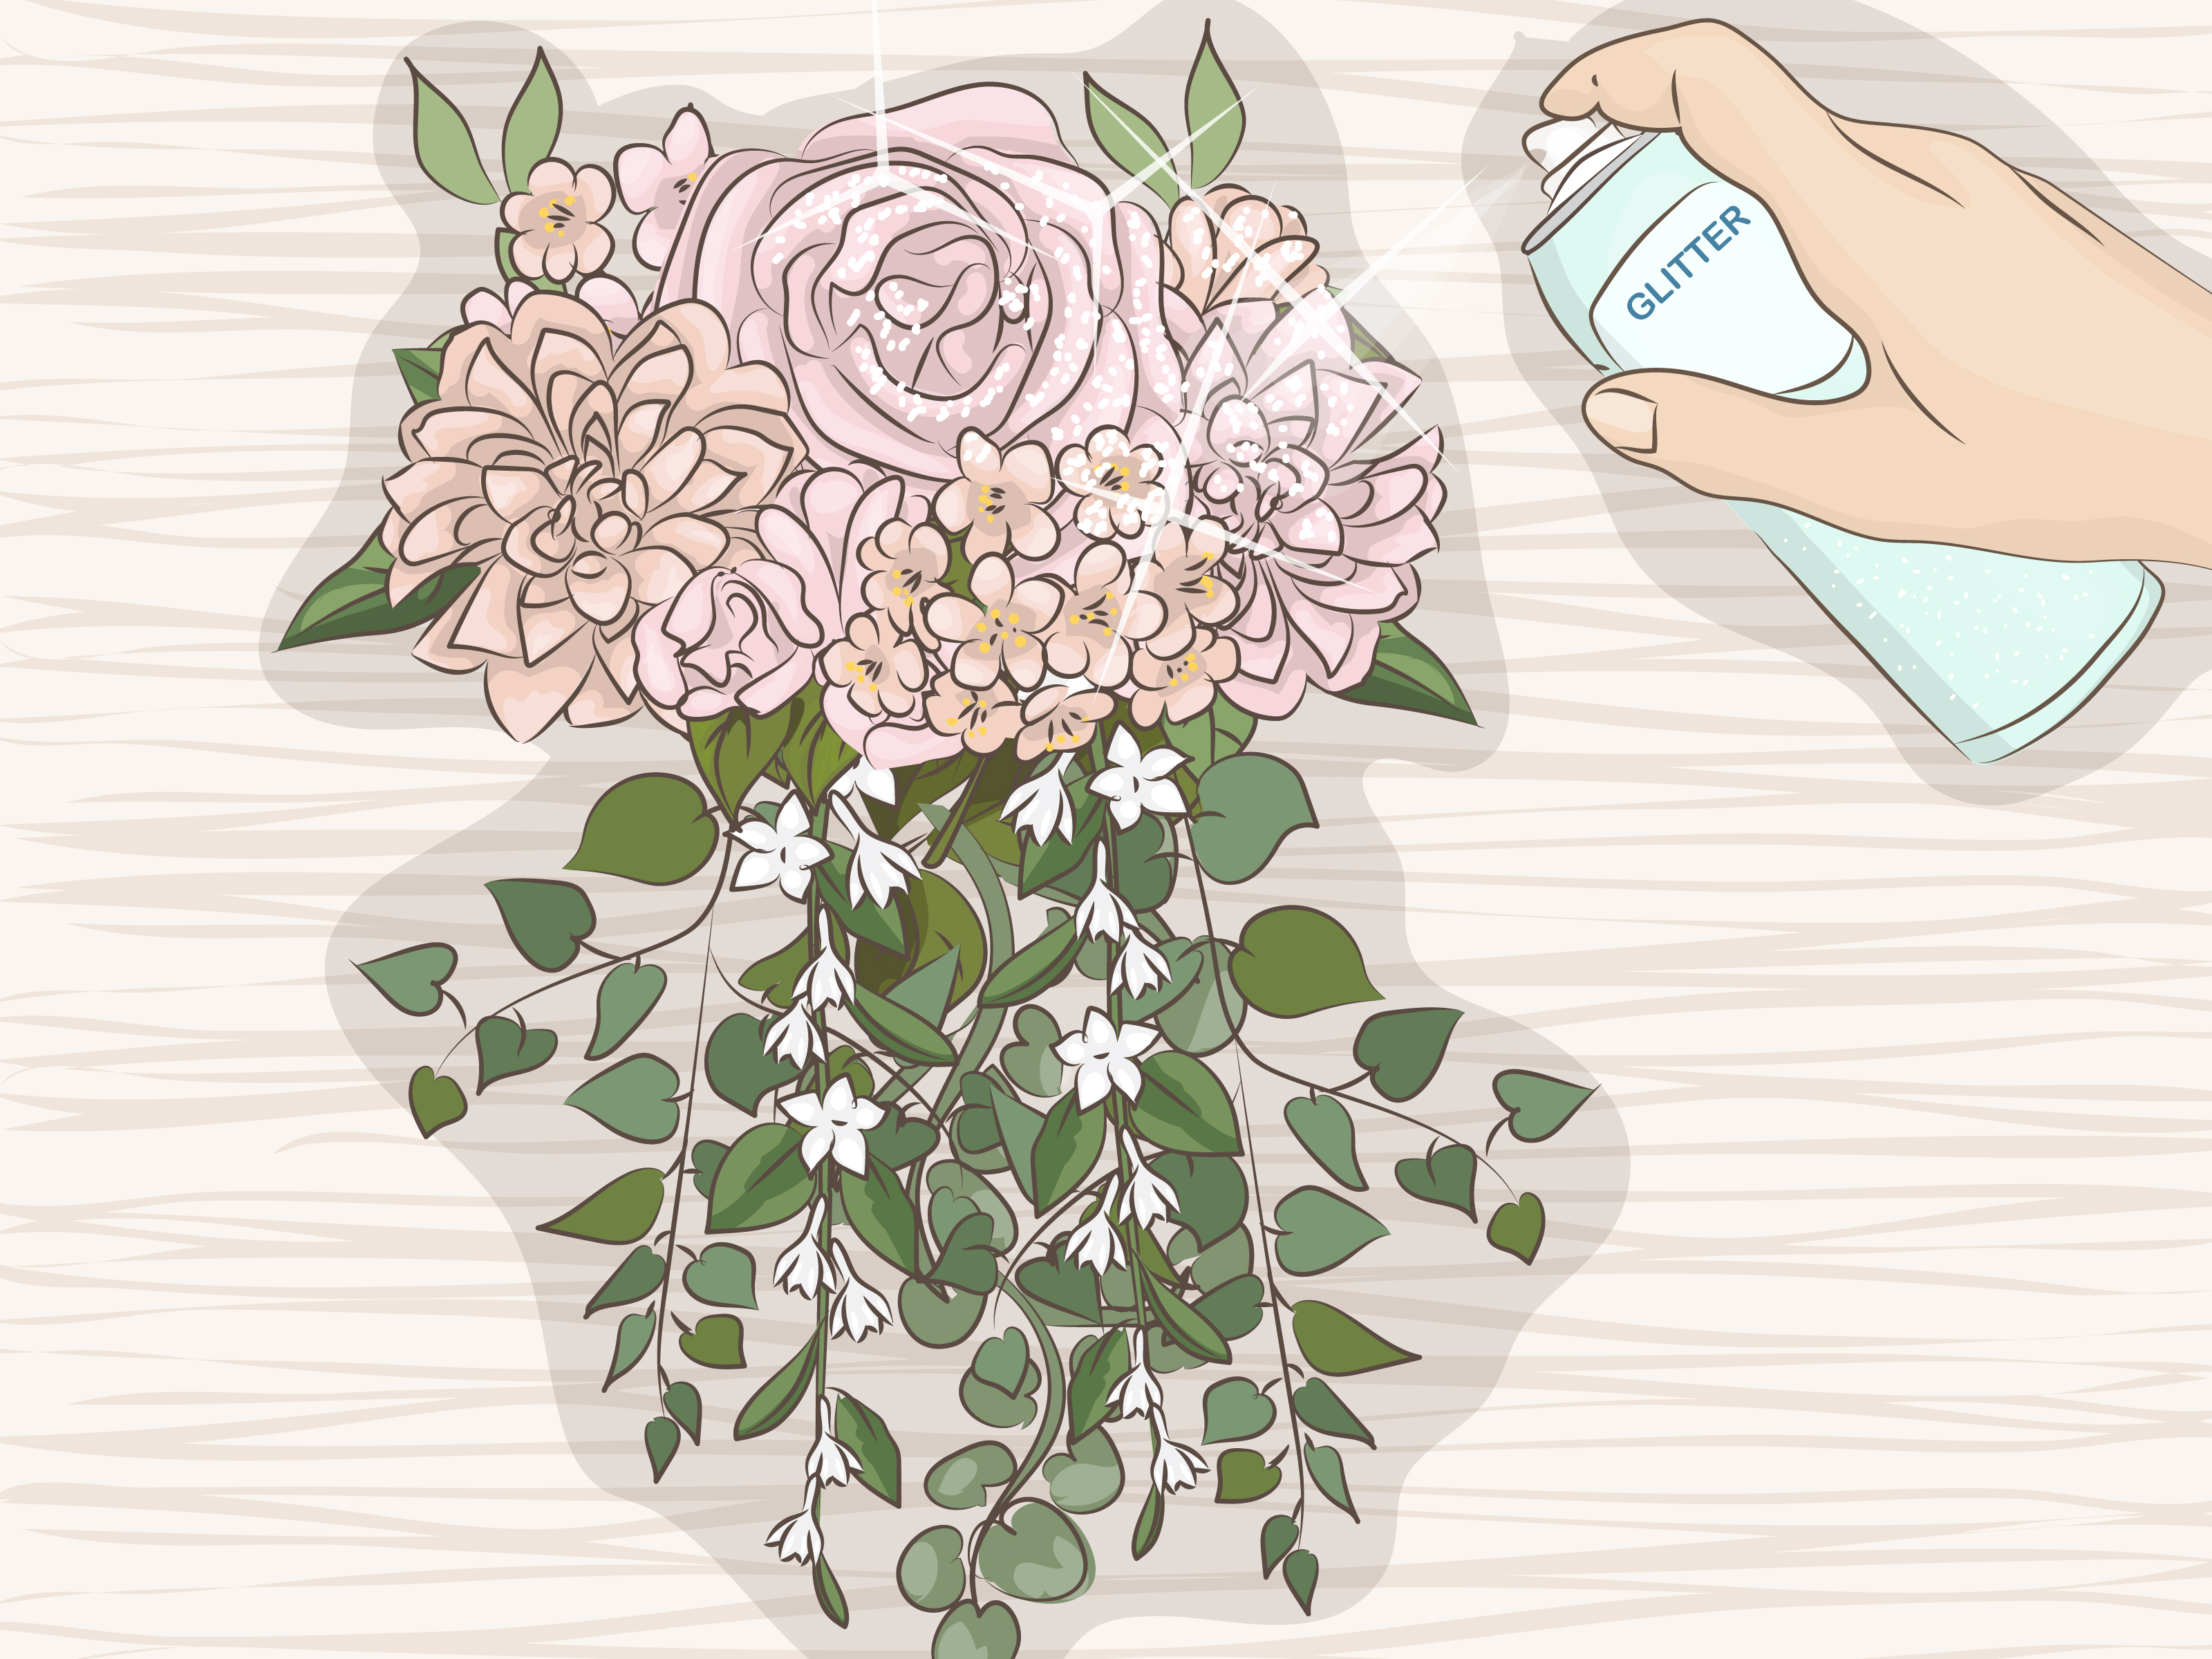 4 Ways To Make A Bridal Bouquet With Artificial Flowers